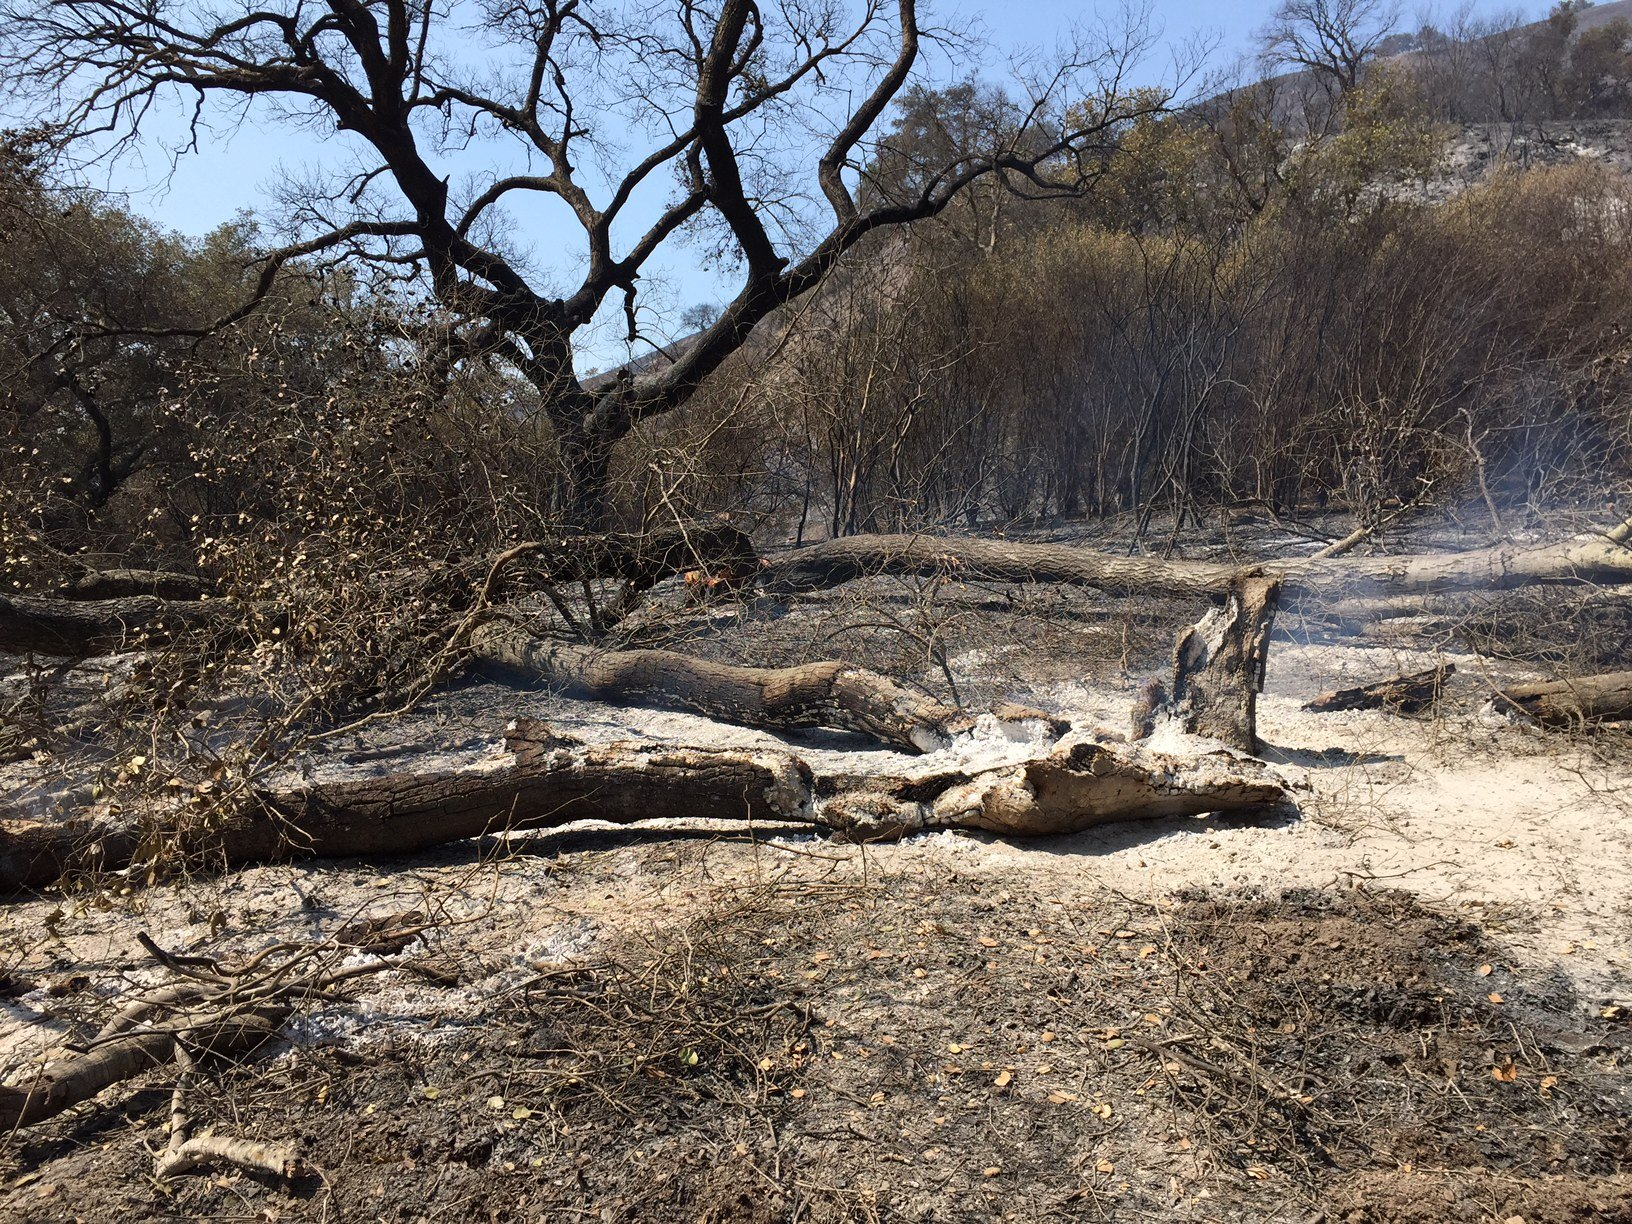 Trees and brush scorched by the Rey Fire. (KSBY)